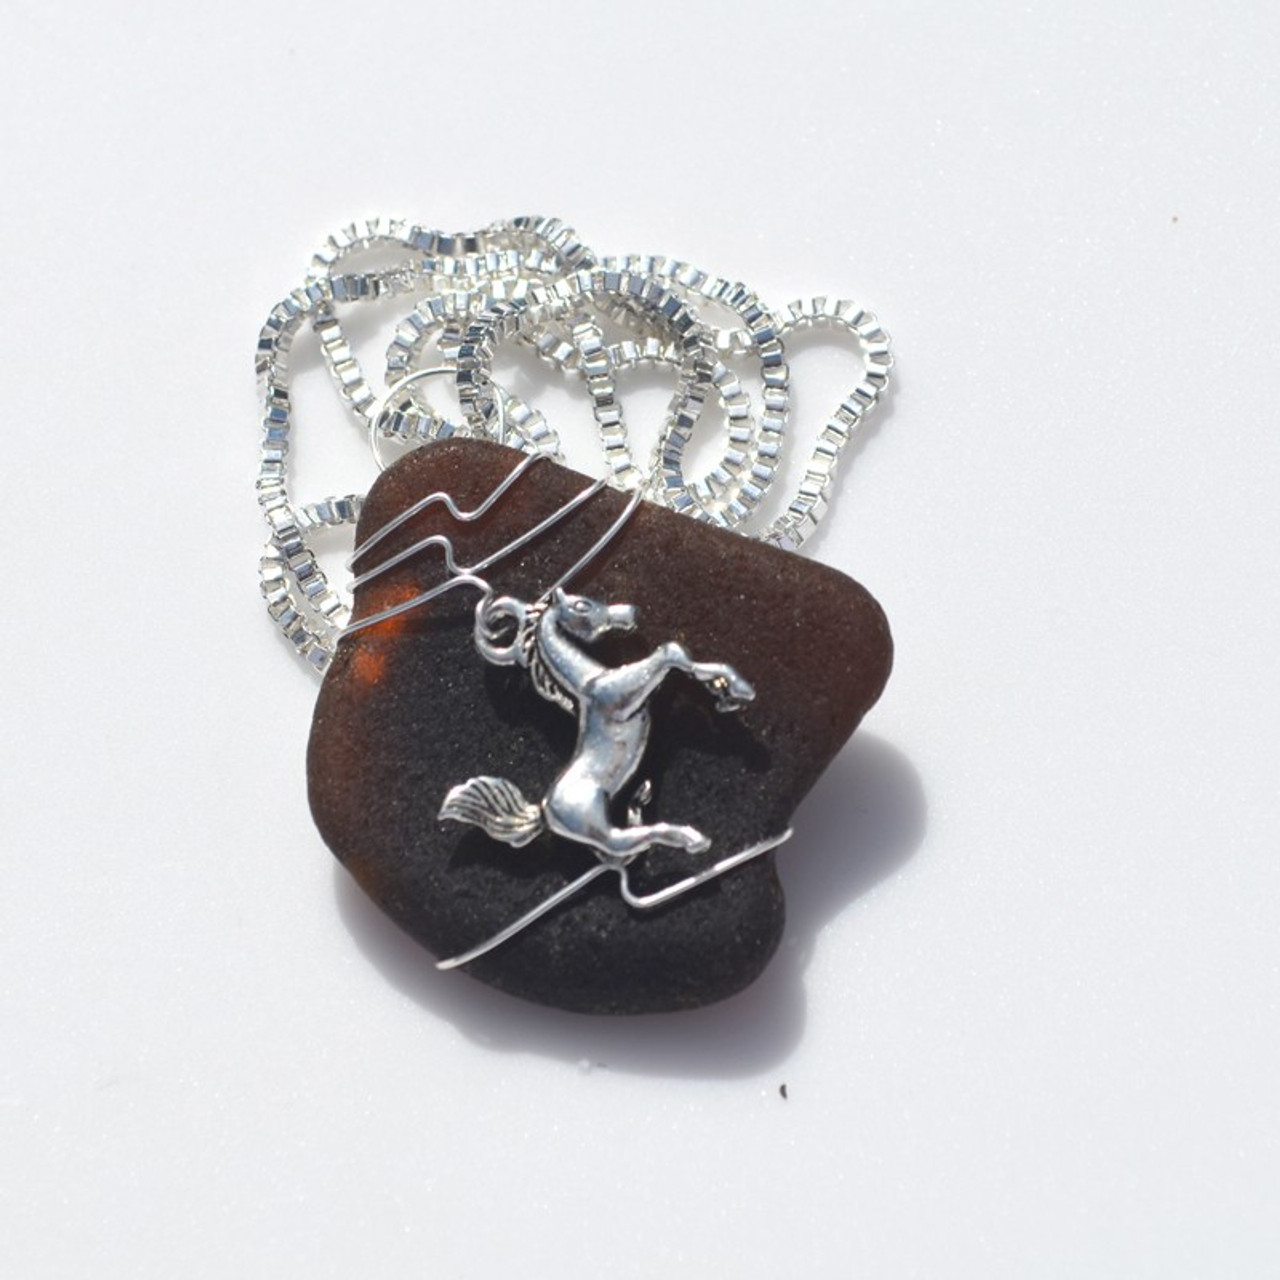 Equestrian Pendant and Necklace